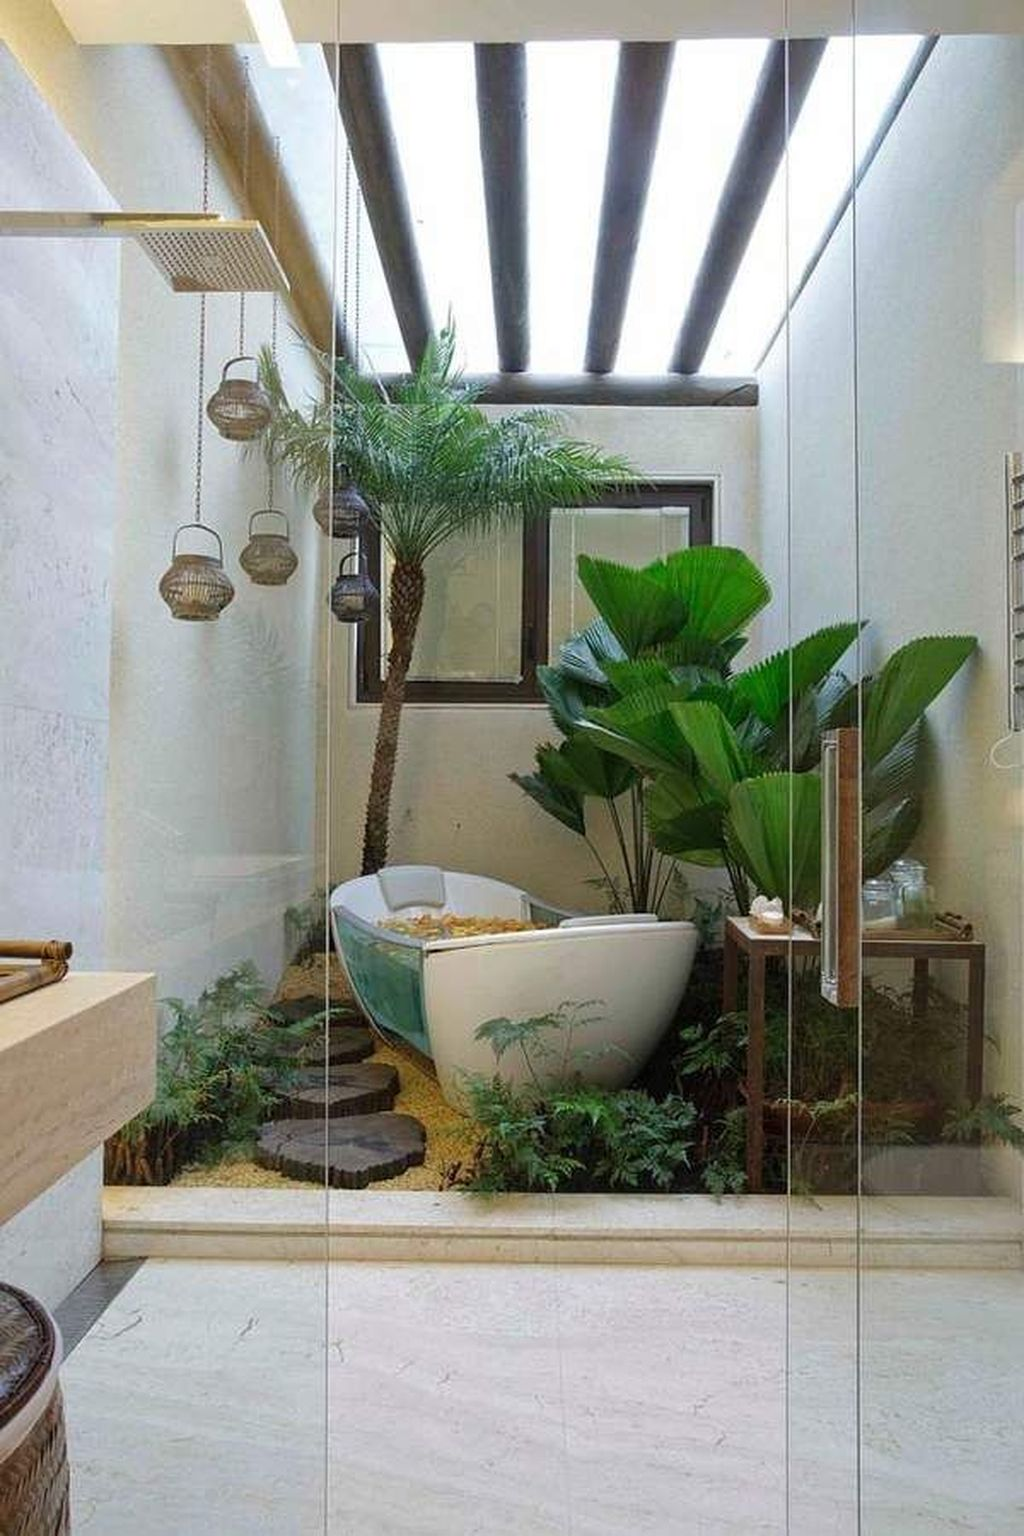 The Best Jungle Bathroom Decor Ideas To Get A Natural Impression 12